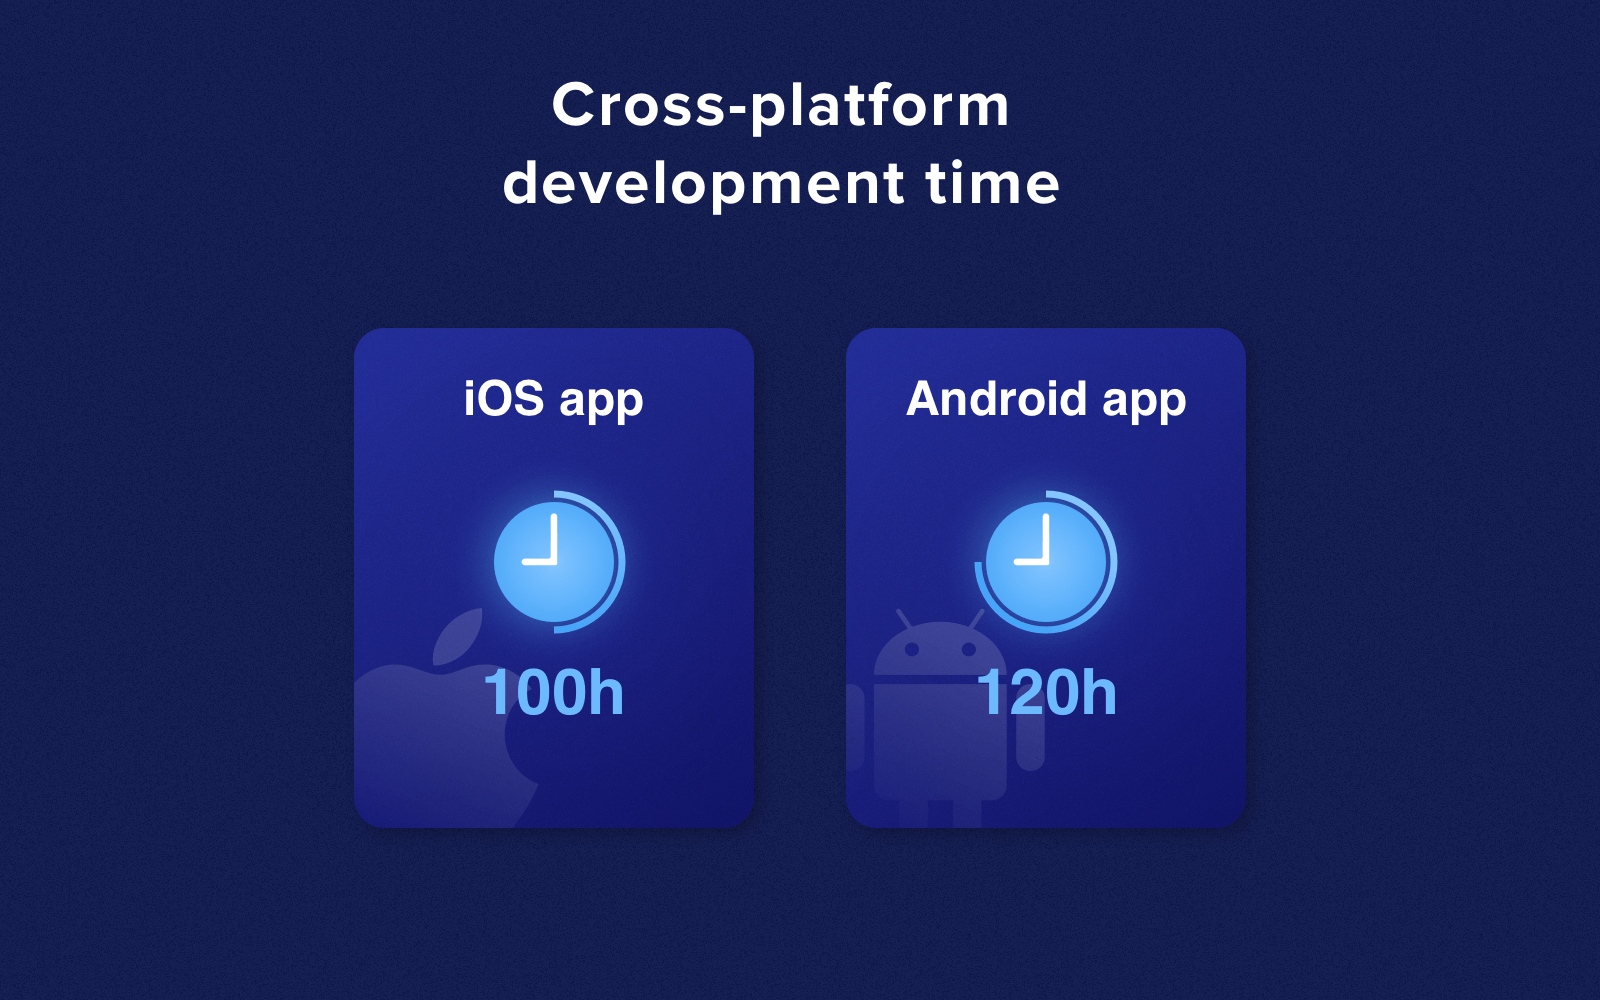 Cross-platform development time